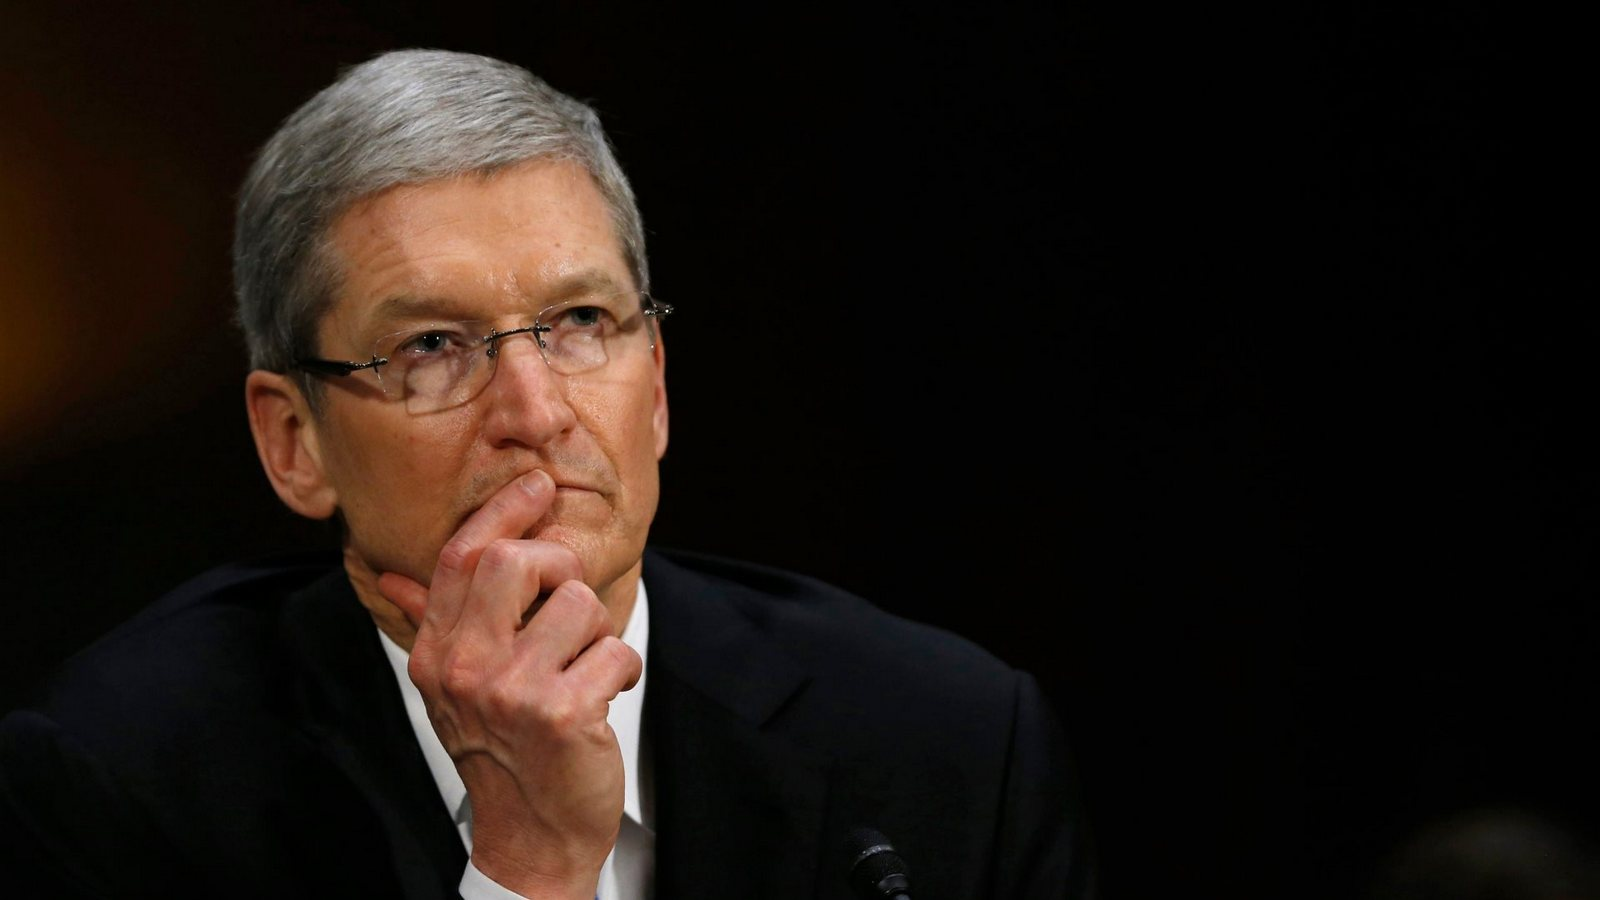 Tim cook salary cut for failing to plan sales